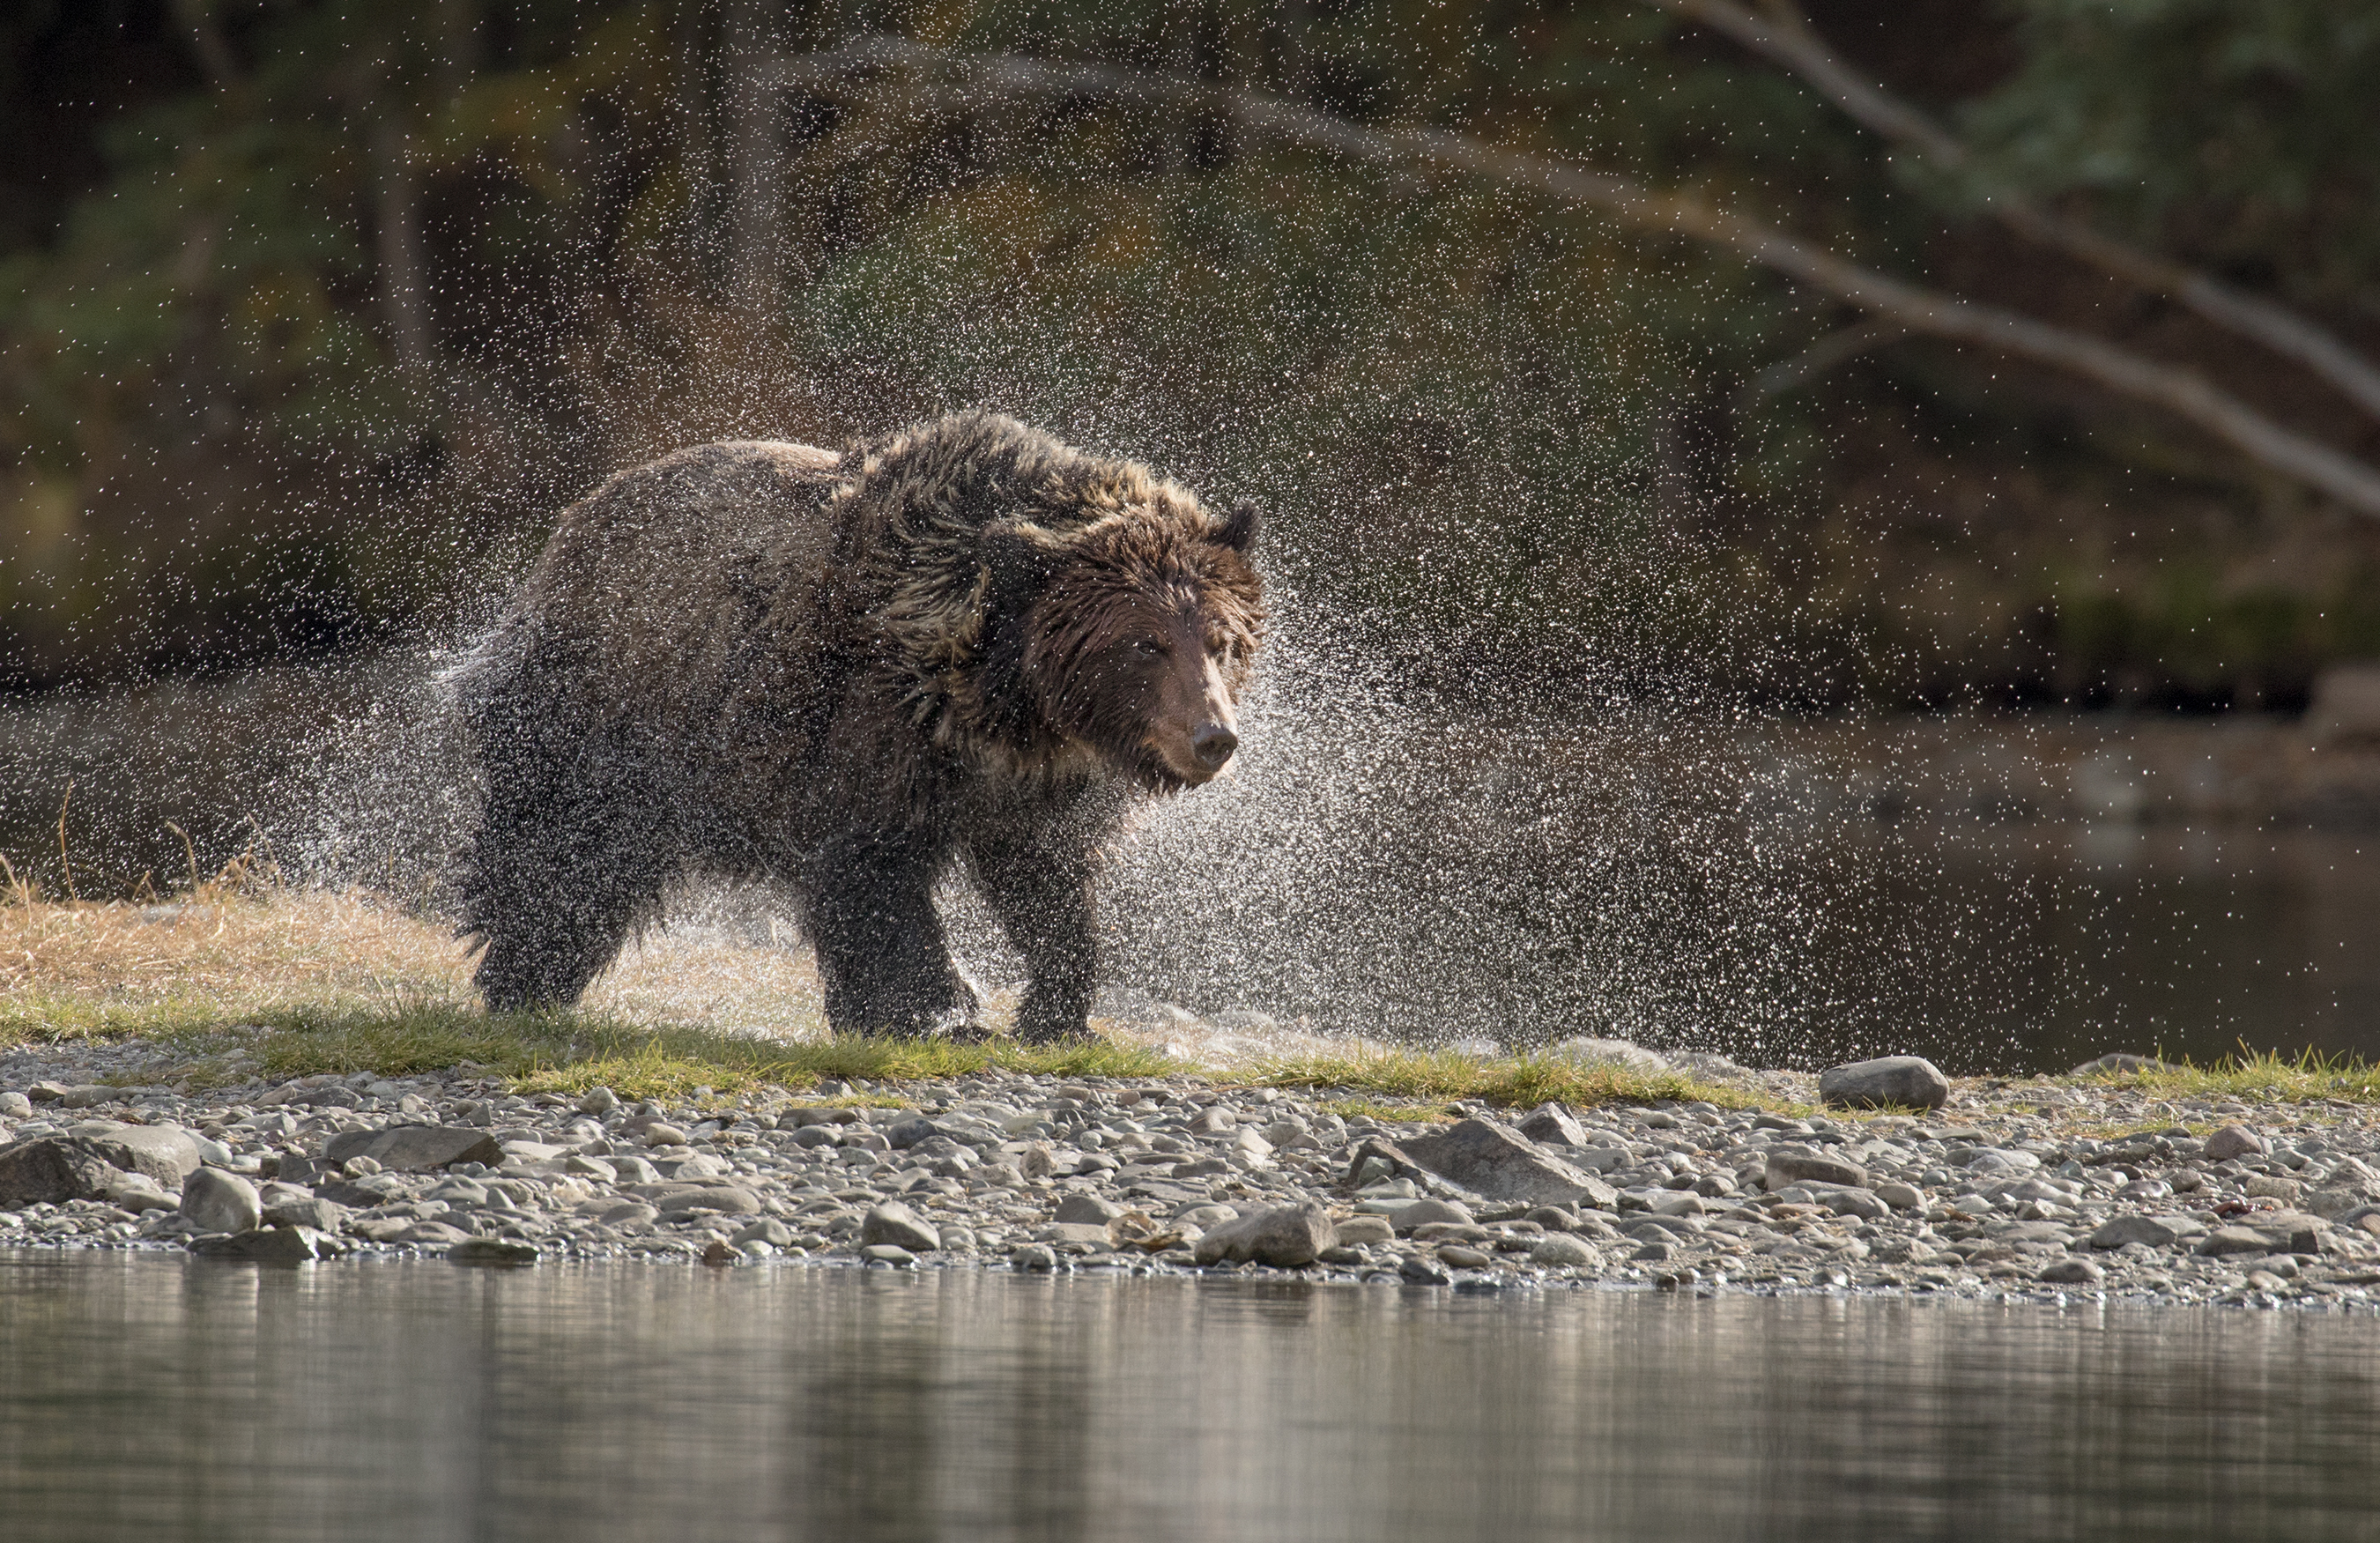 Grizzly Bear in water- David Hemmings